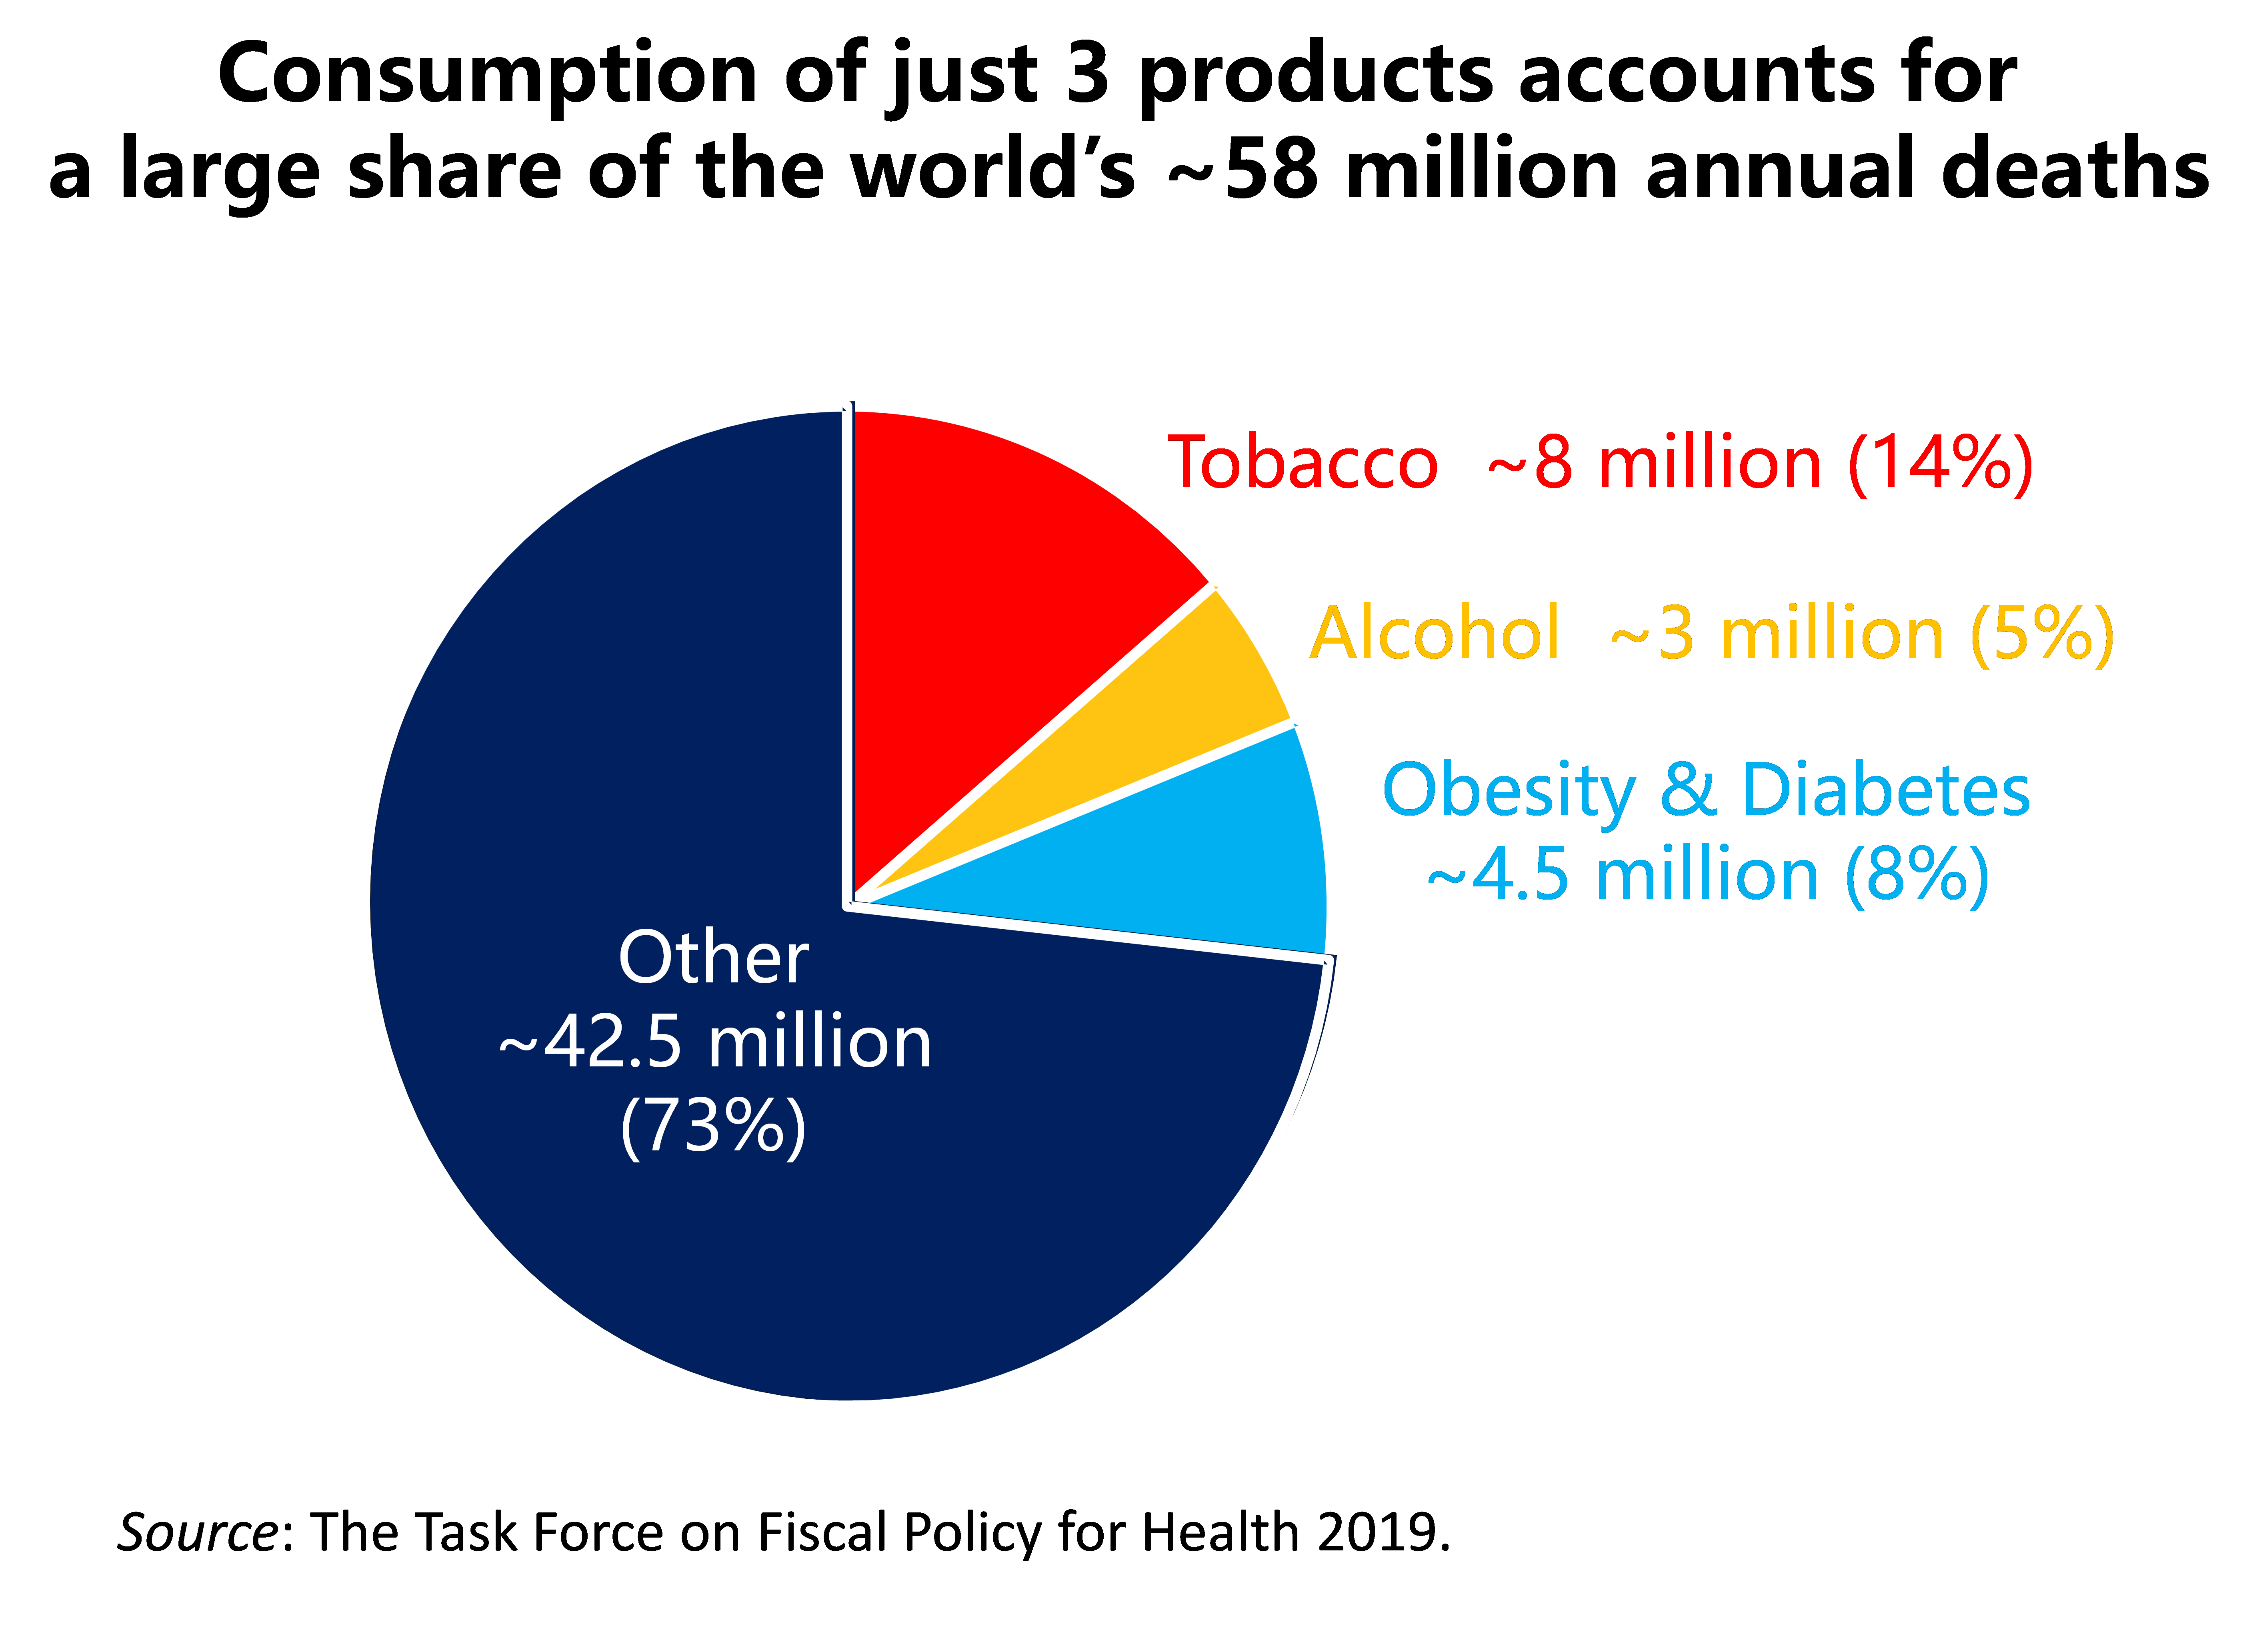 Pie chart showing that 3 products account for a large share of the world's annual deaths